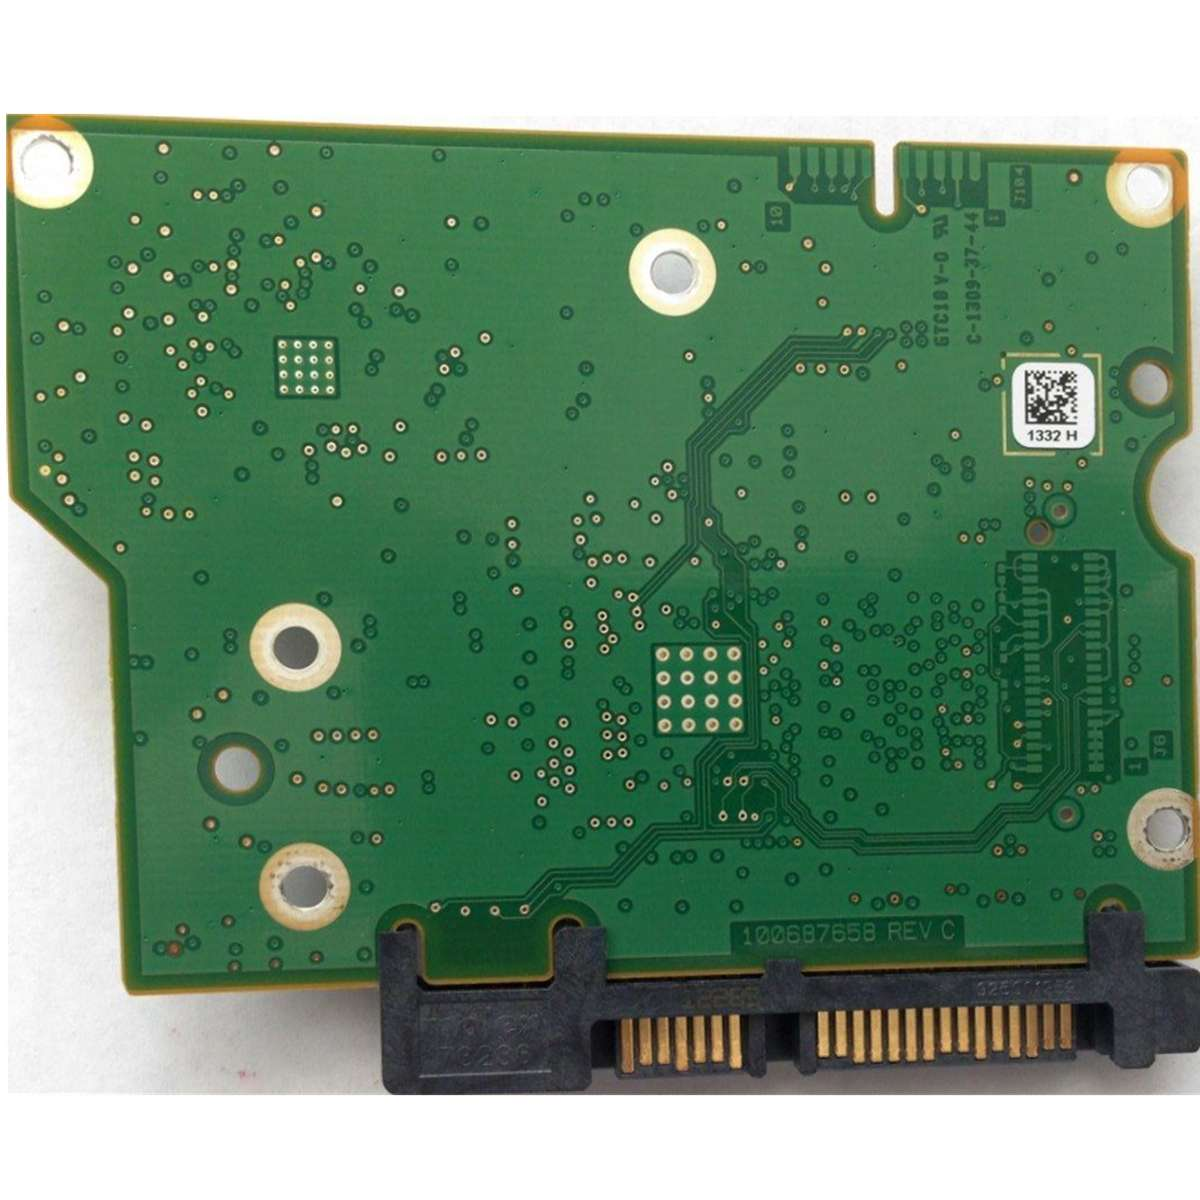 100687658 Logic Controller Board PCB Replacement Circuit Board Practical Durable HDD Accessories Printed For <font><b>ST2000DM001</b></font> image